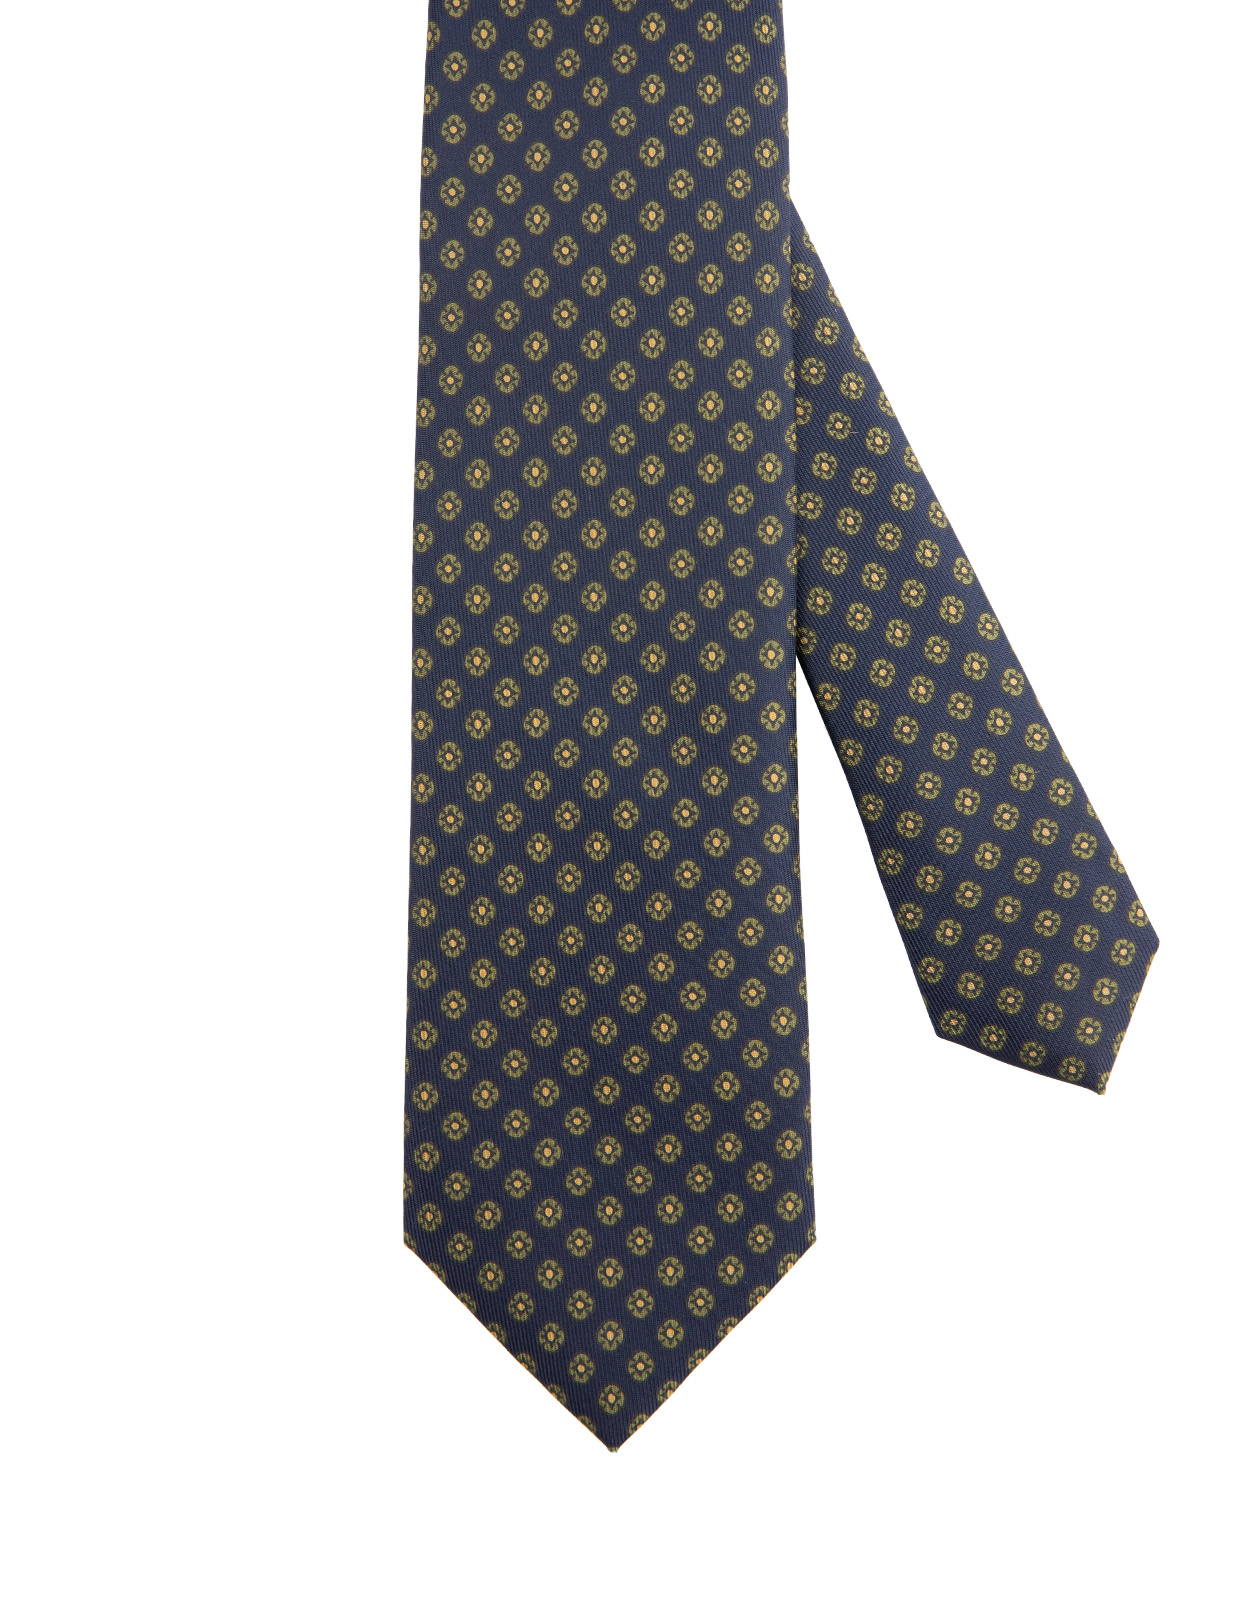 Classic Patterned Handmade Silk Tie Navy